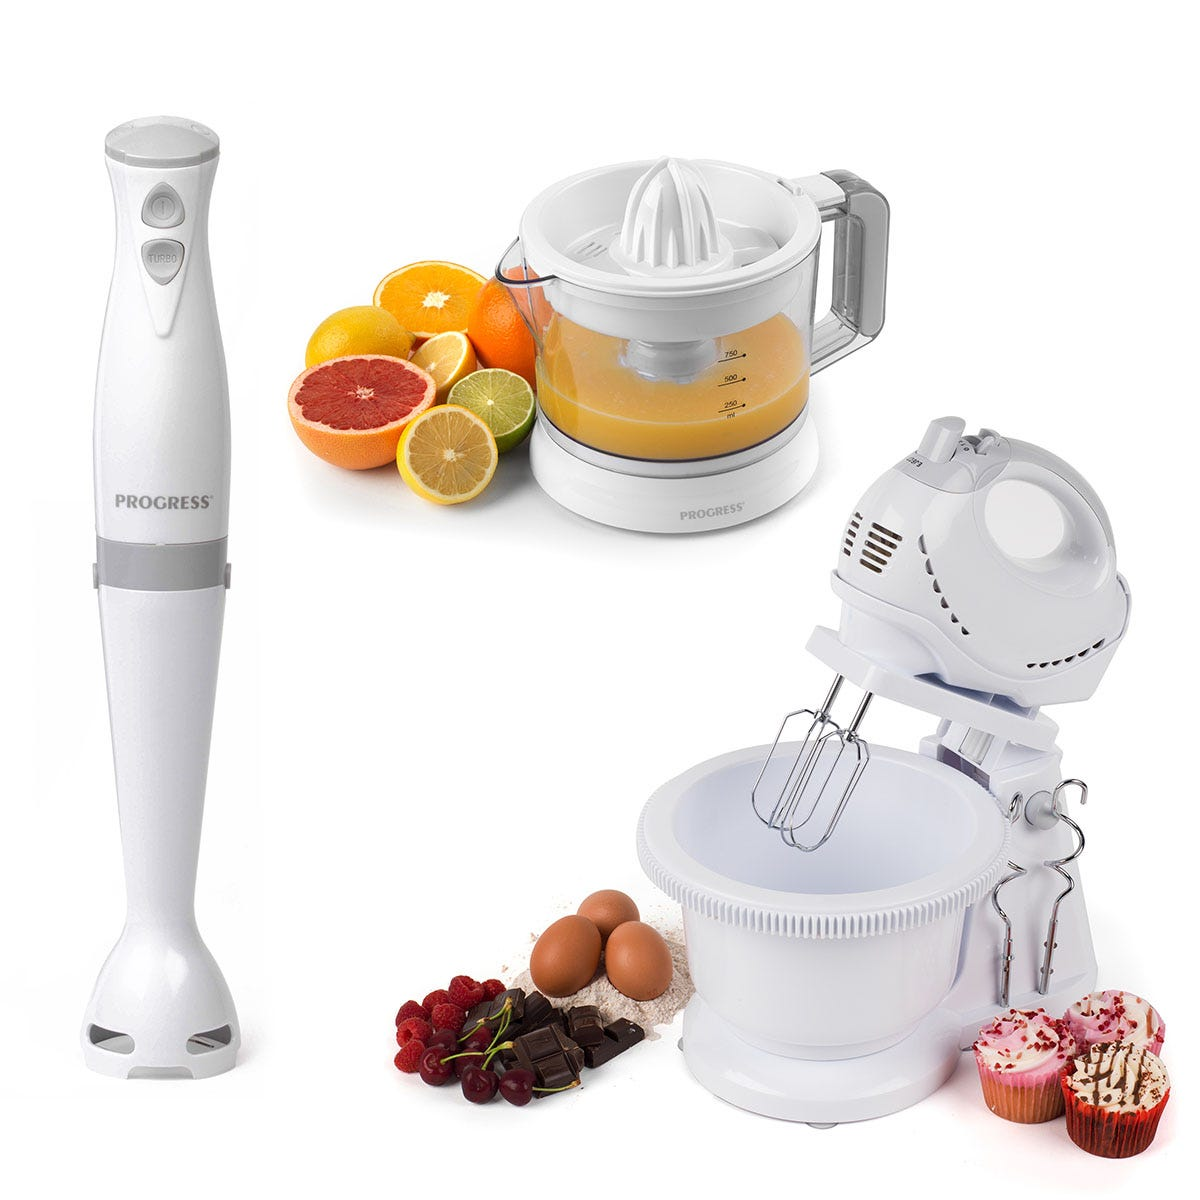 Progress COMBO-70778 250W Twin Hand/Stand Mixer, 350W Stick Blender, and Electric Citrus Juicer - White